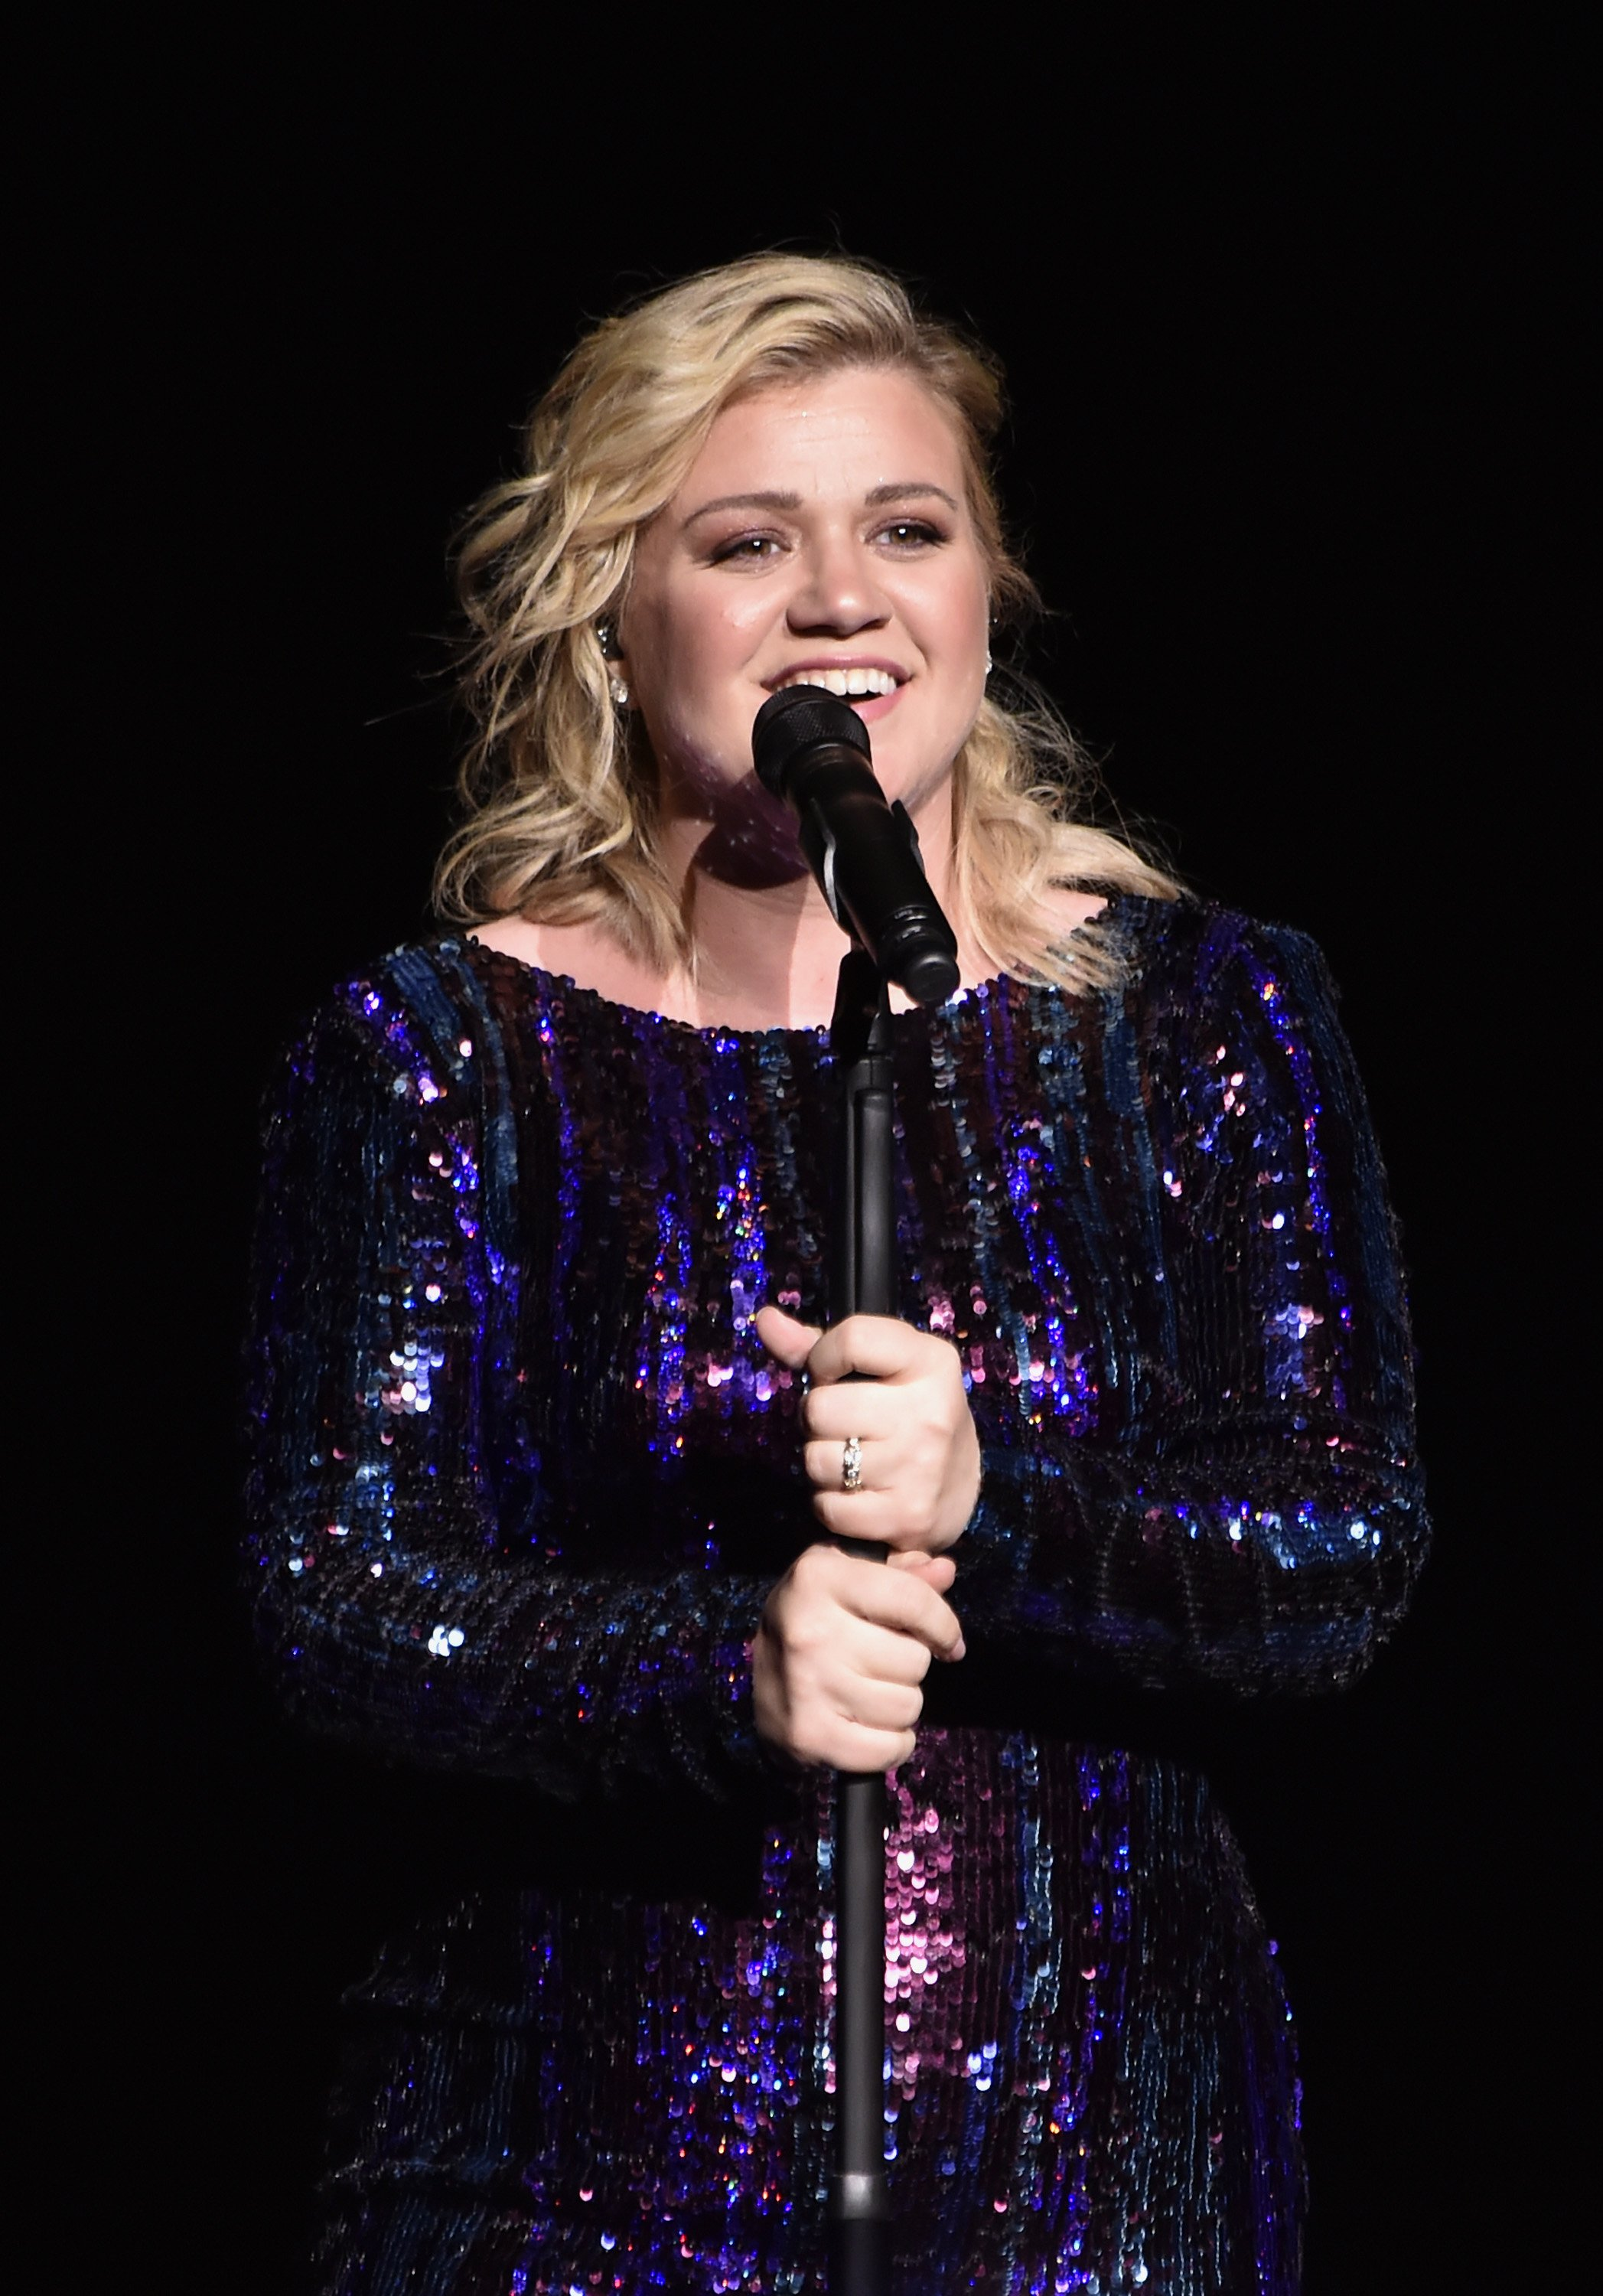 Image Credits: Getty Images | Kelly Clarkson performing